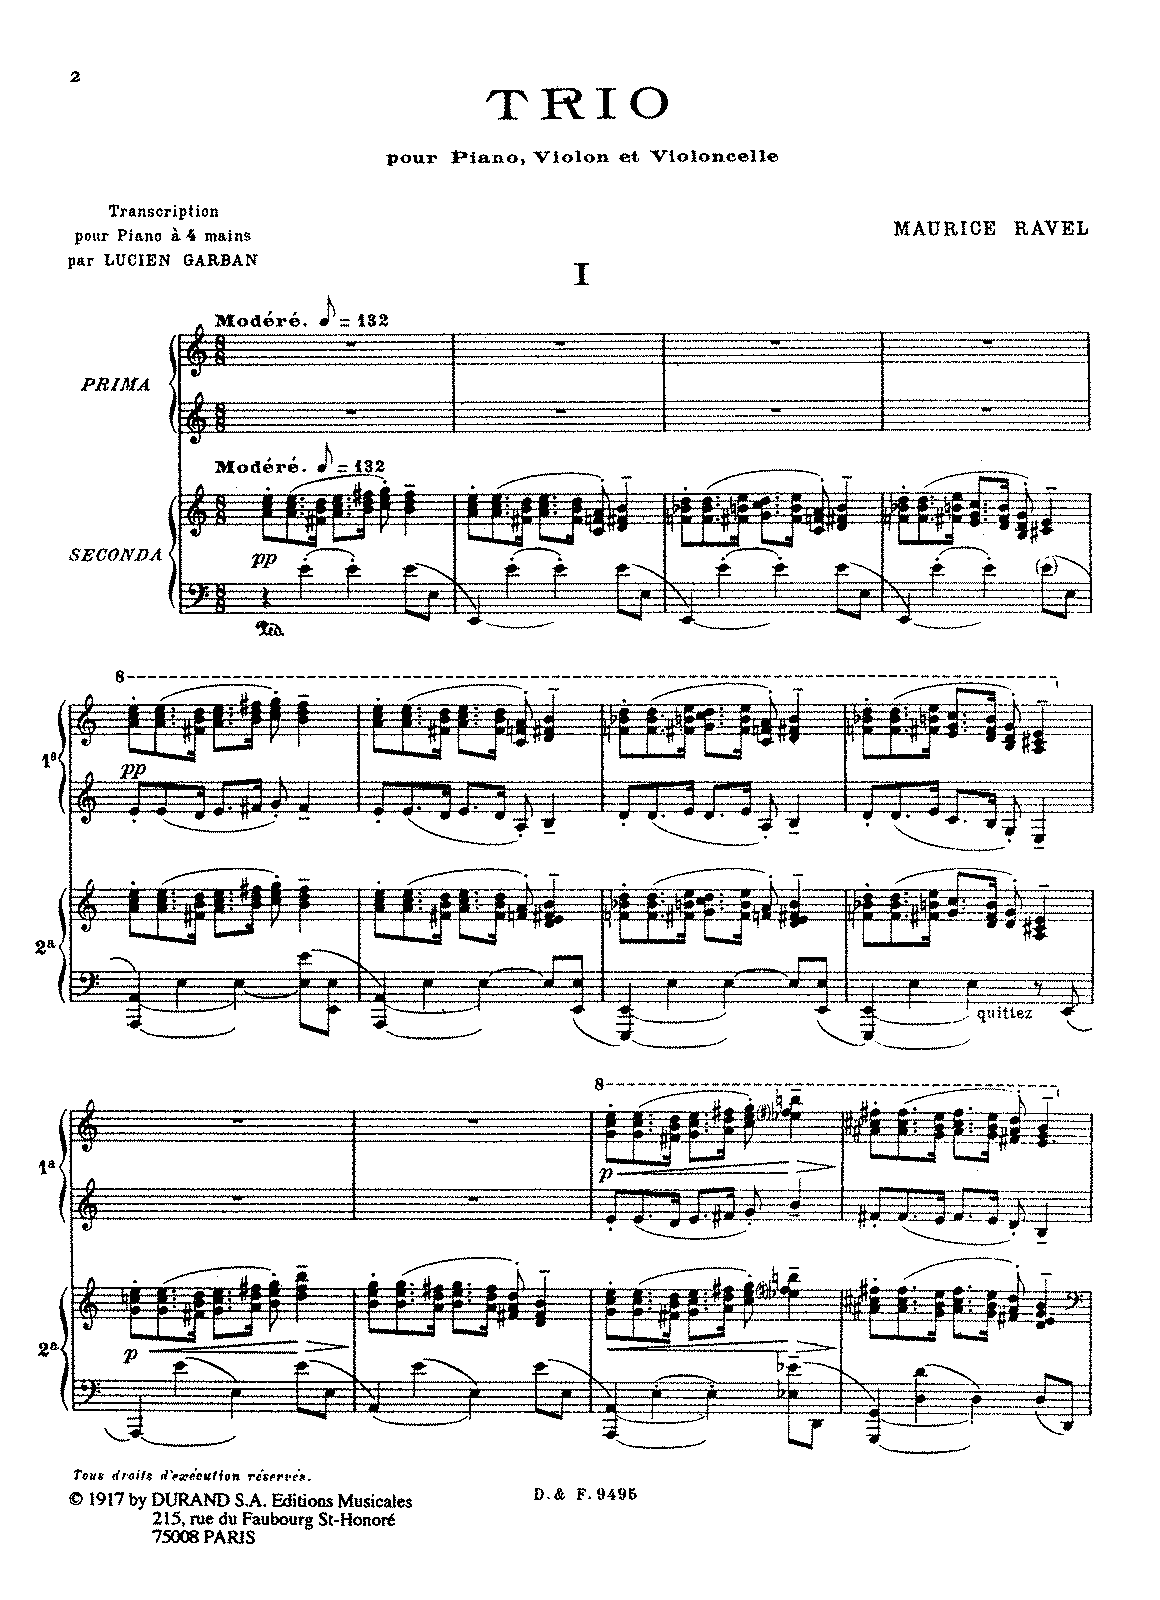 PMLP04940-Ravel - Trio for violin, cello, and piano (trans. Garban - Piano 4 hands).pdf